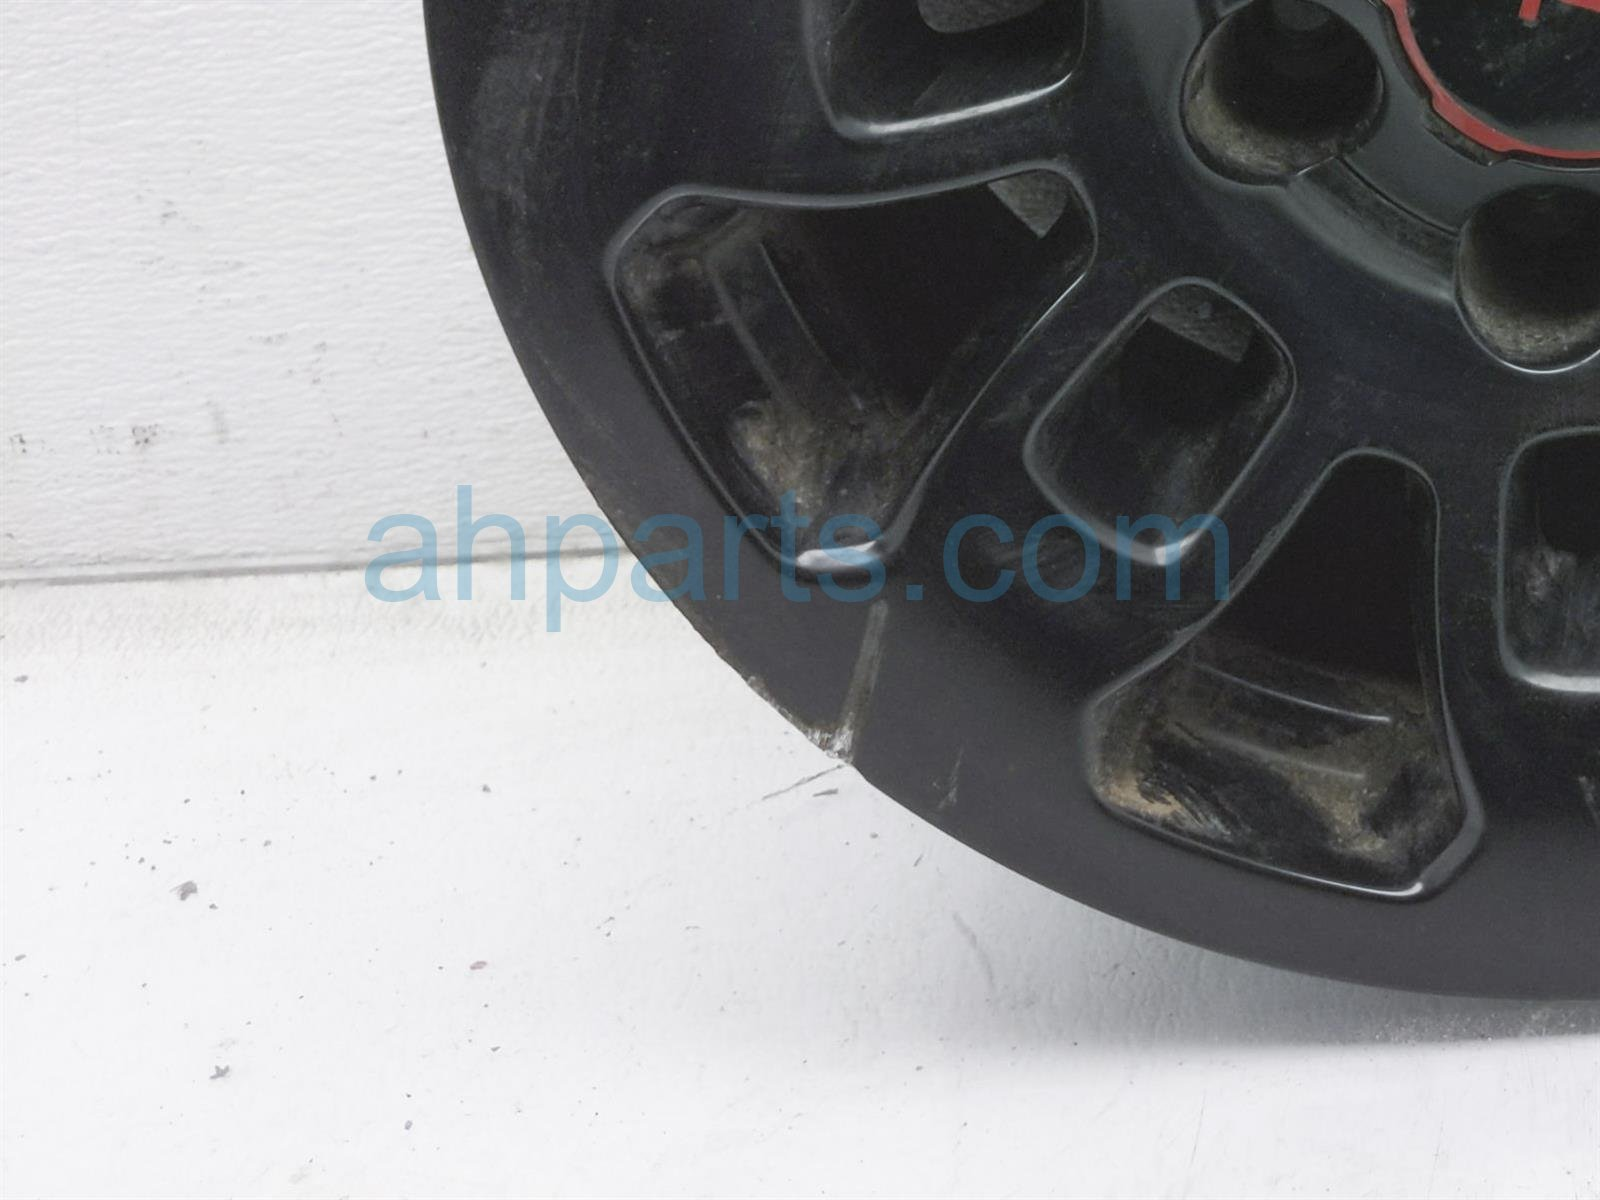 2017 Toyota Tacoma Front Driver Wheel/rim   Light Curb PT758 35170 02 Replacement